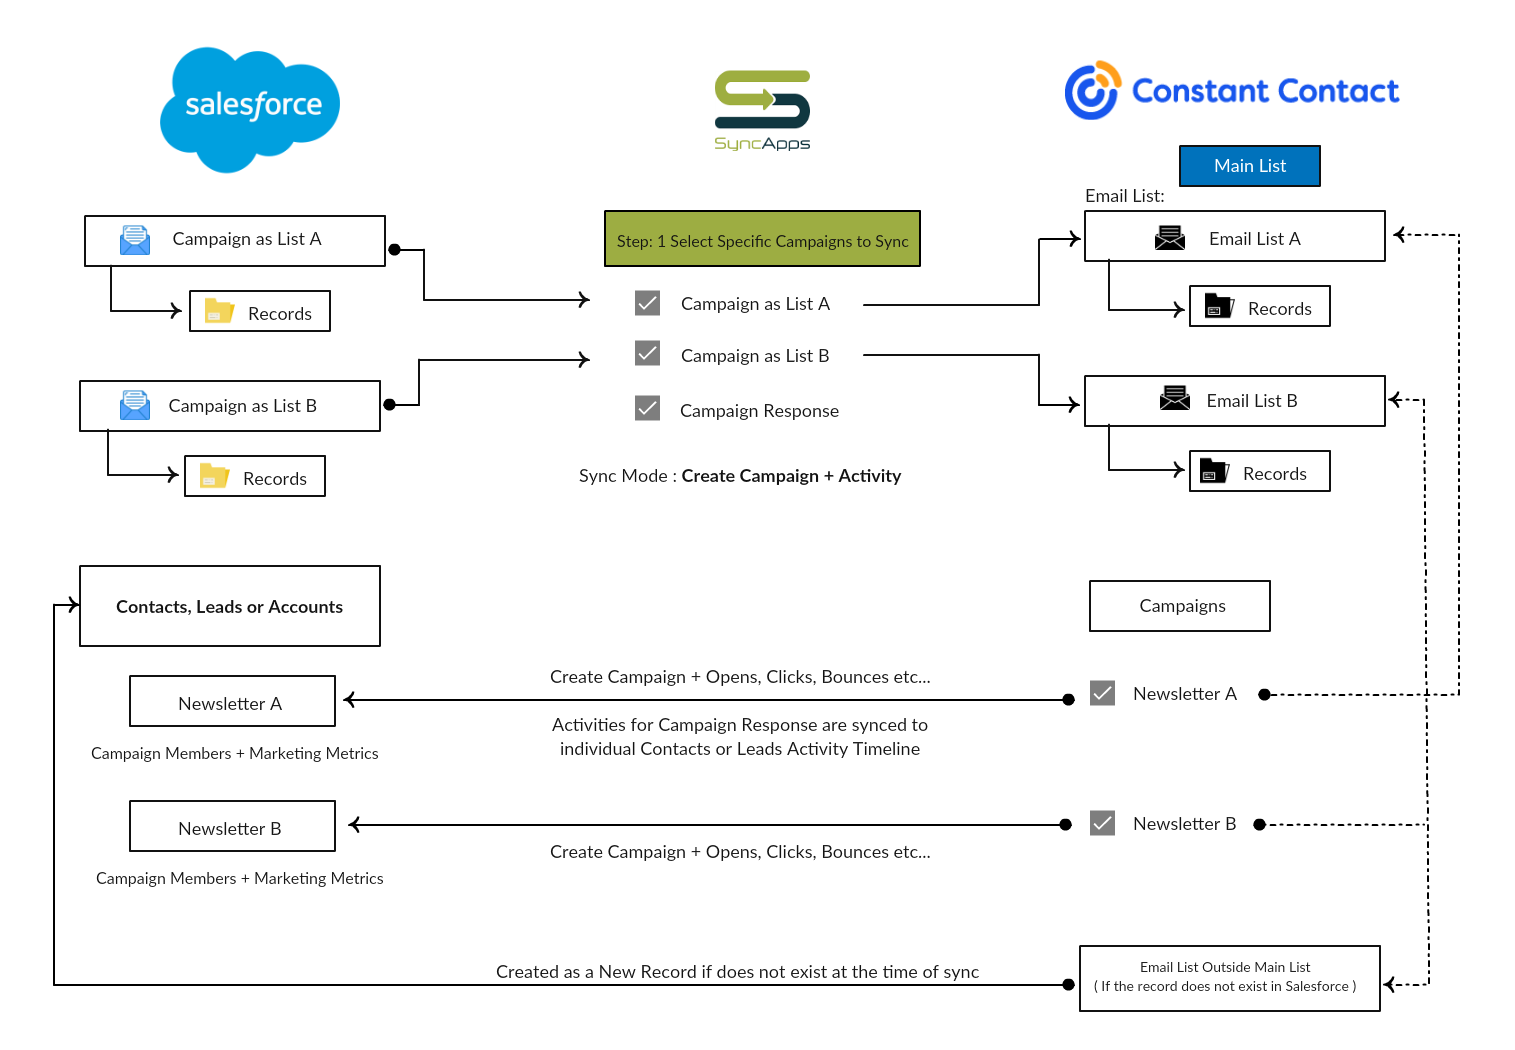 Salesforce for Constant Contact